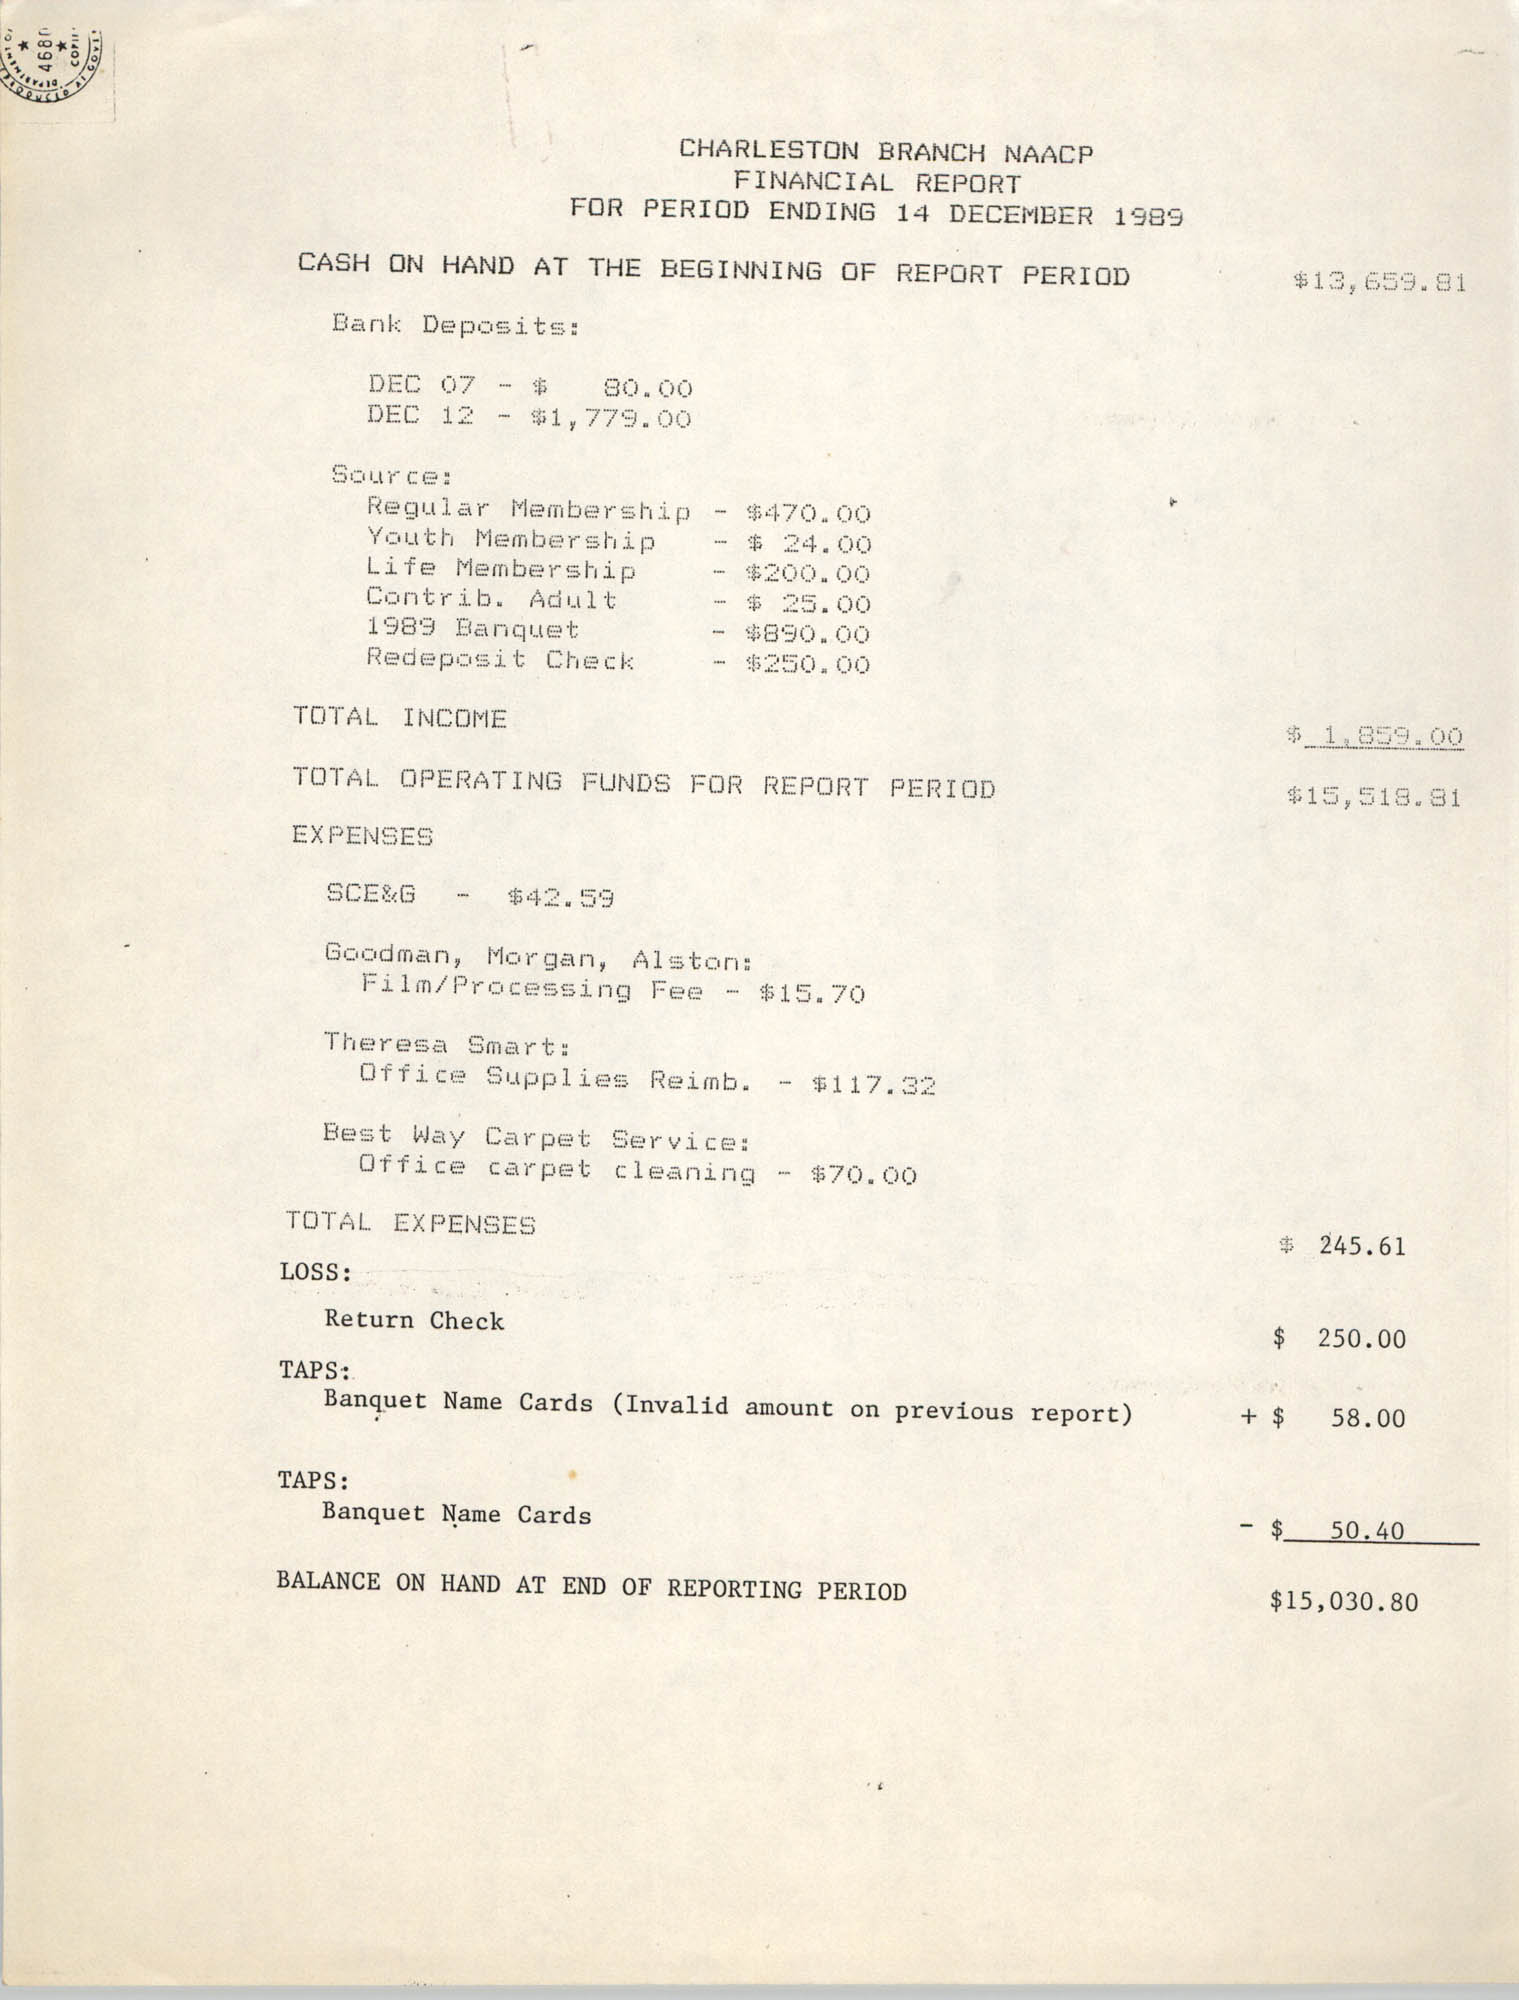 Charleston Branch of the NAACP Financial Report for Period Ending December 14, 1989